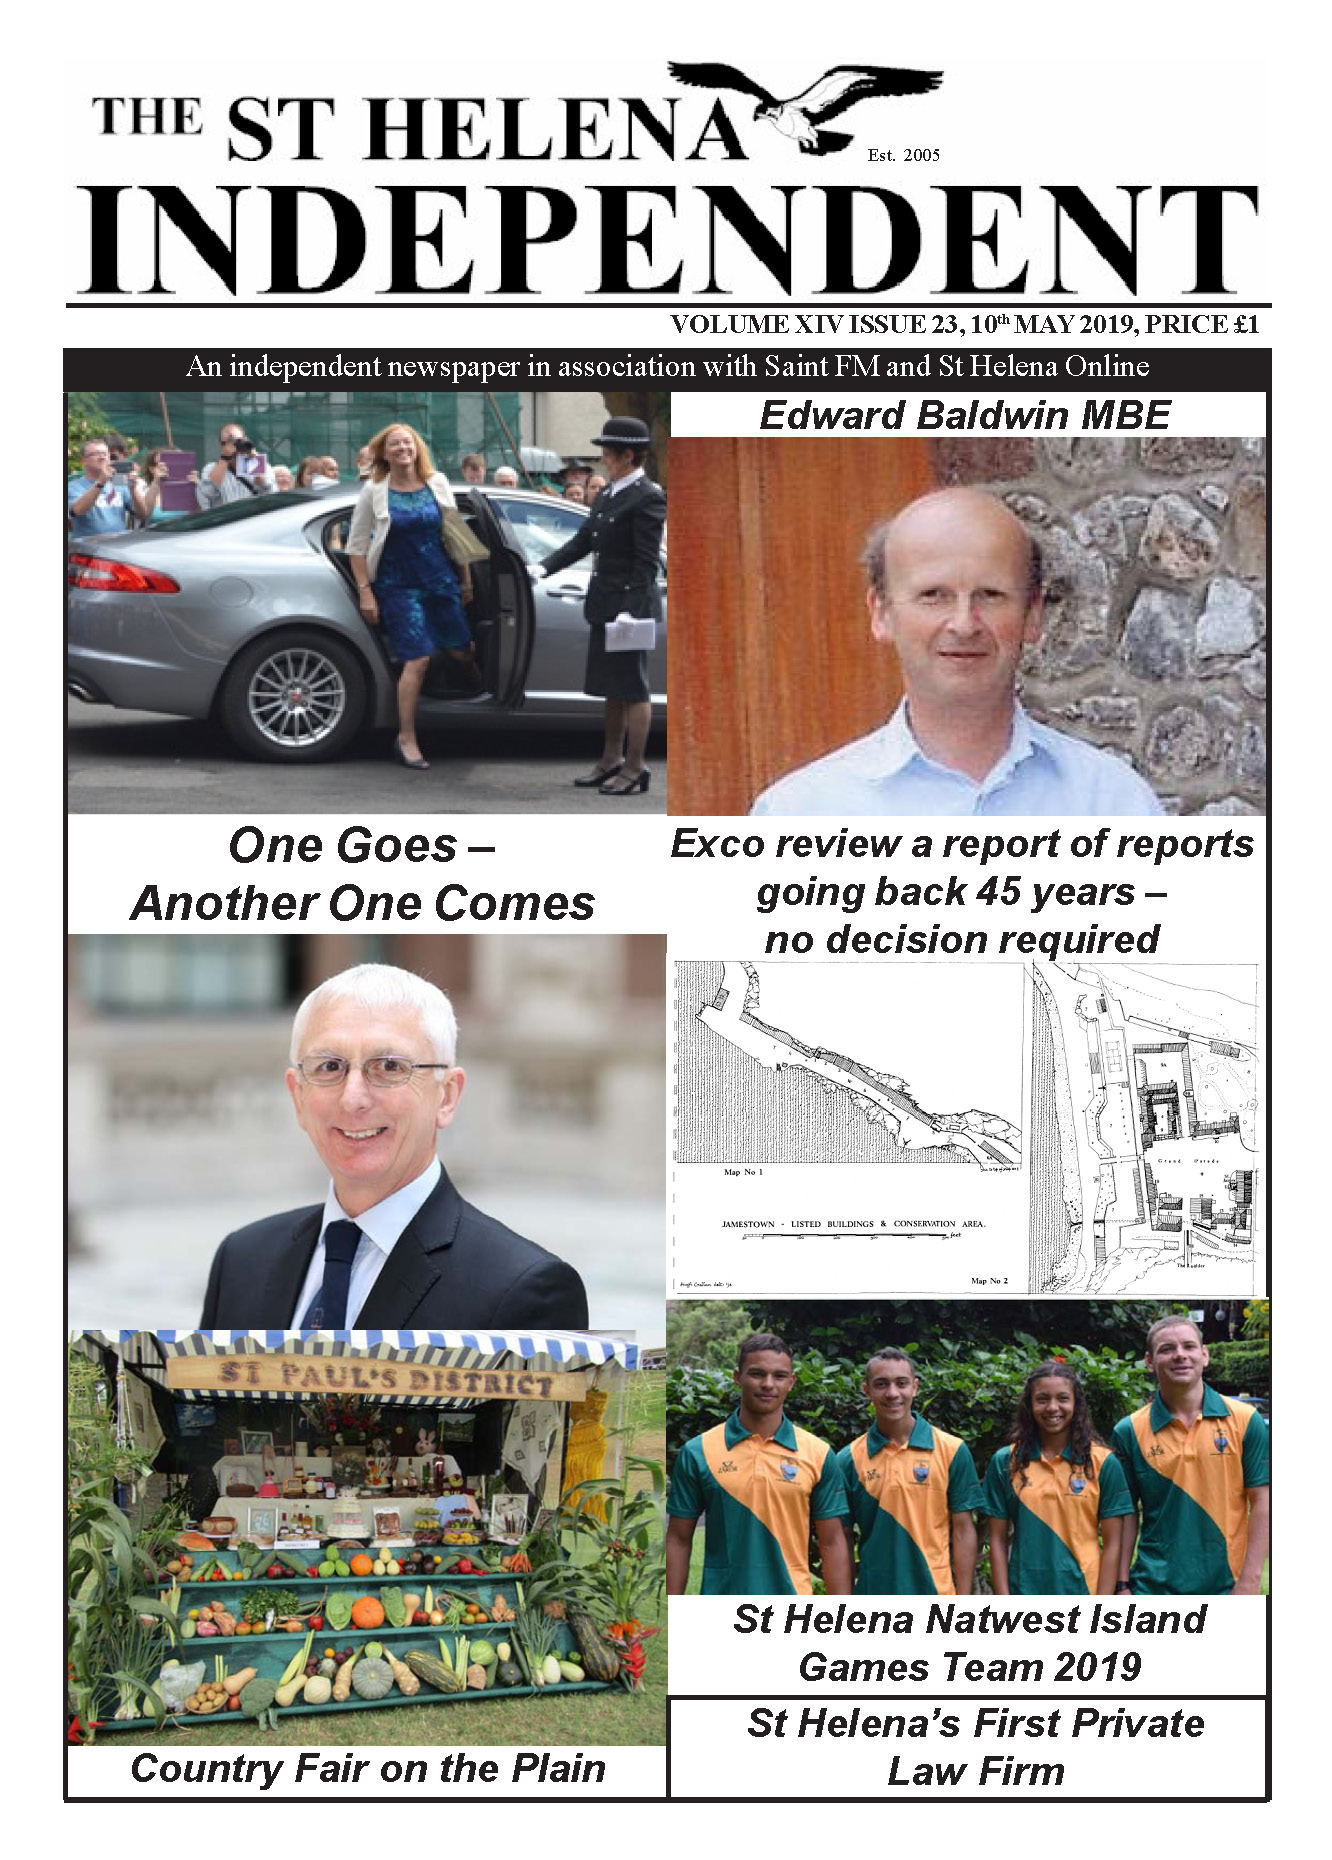 St Helena Independent 20190510